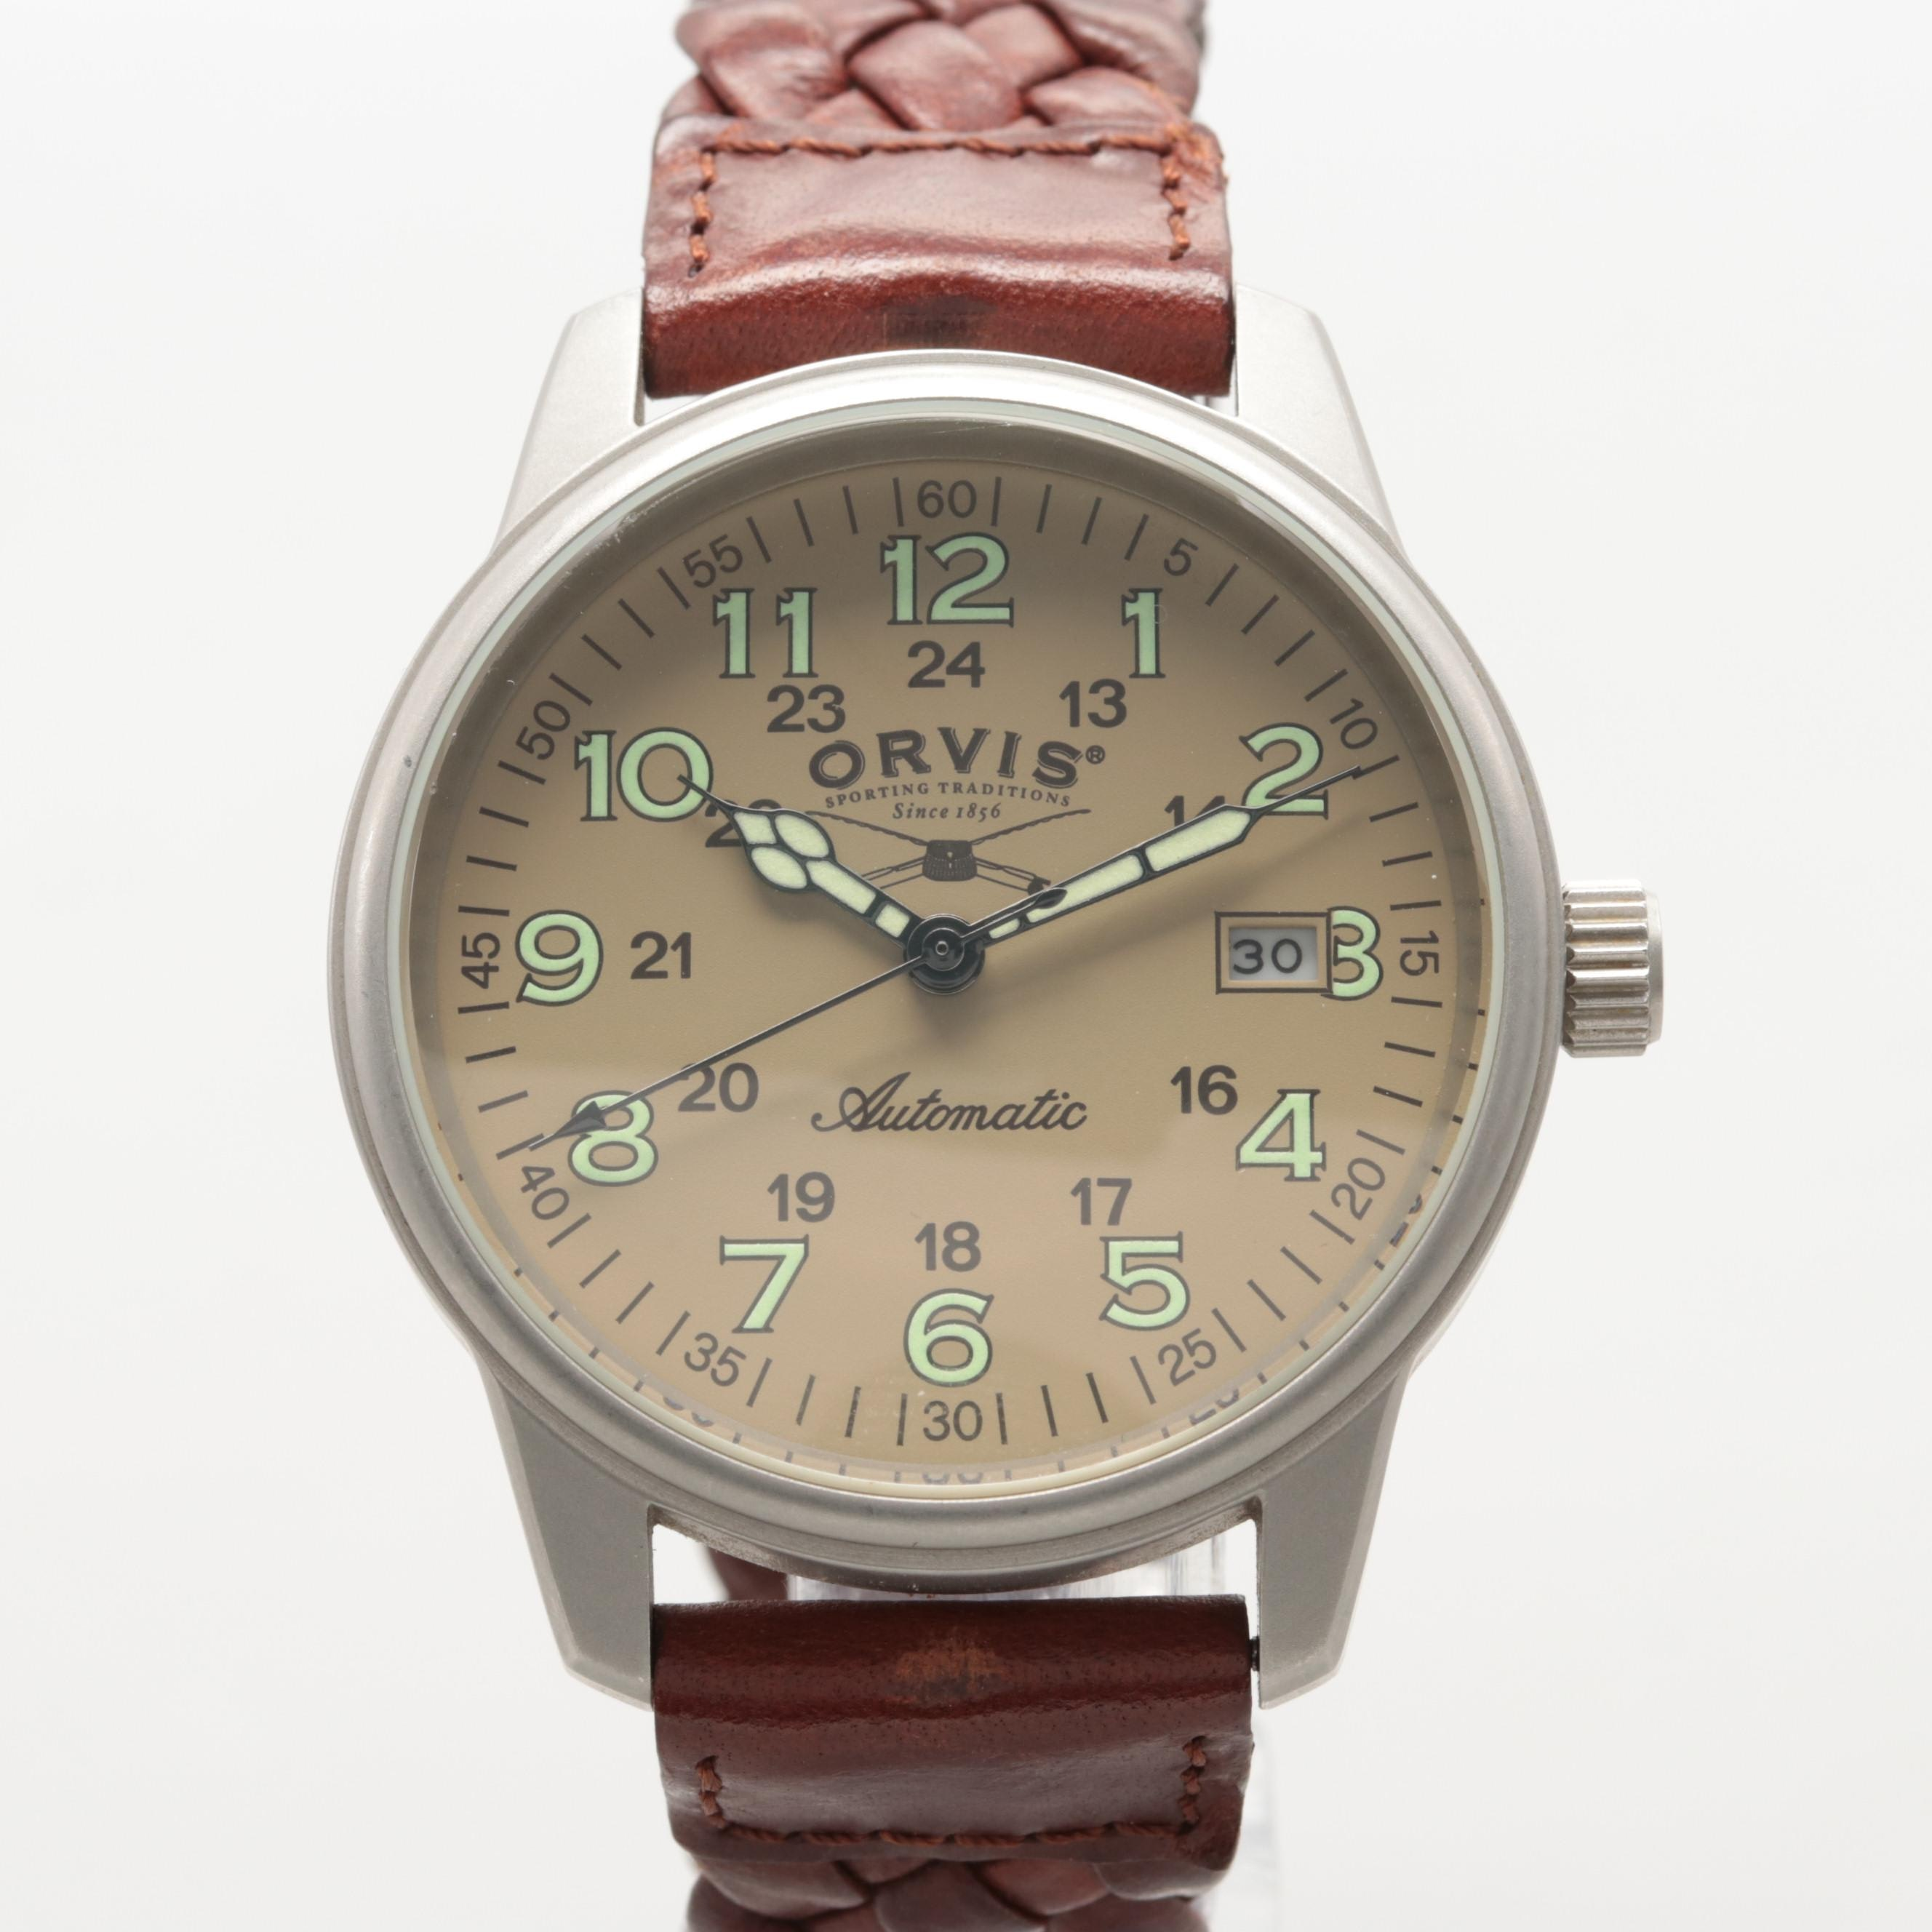 Orvis Stainless Steel Automatic Wristwatch With Date Window